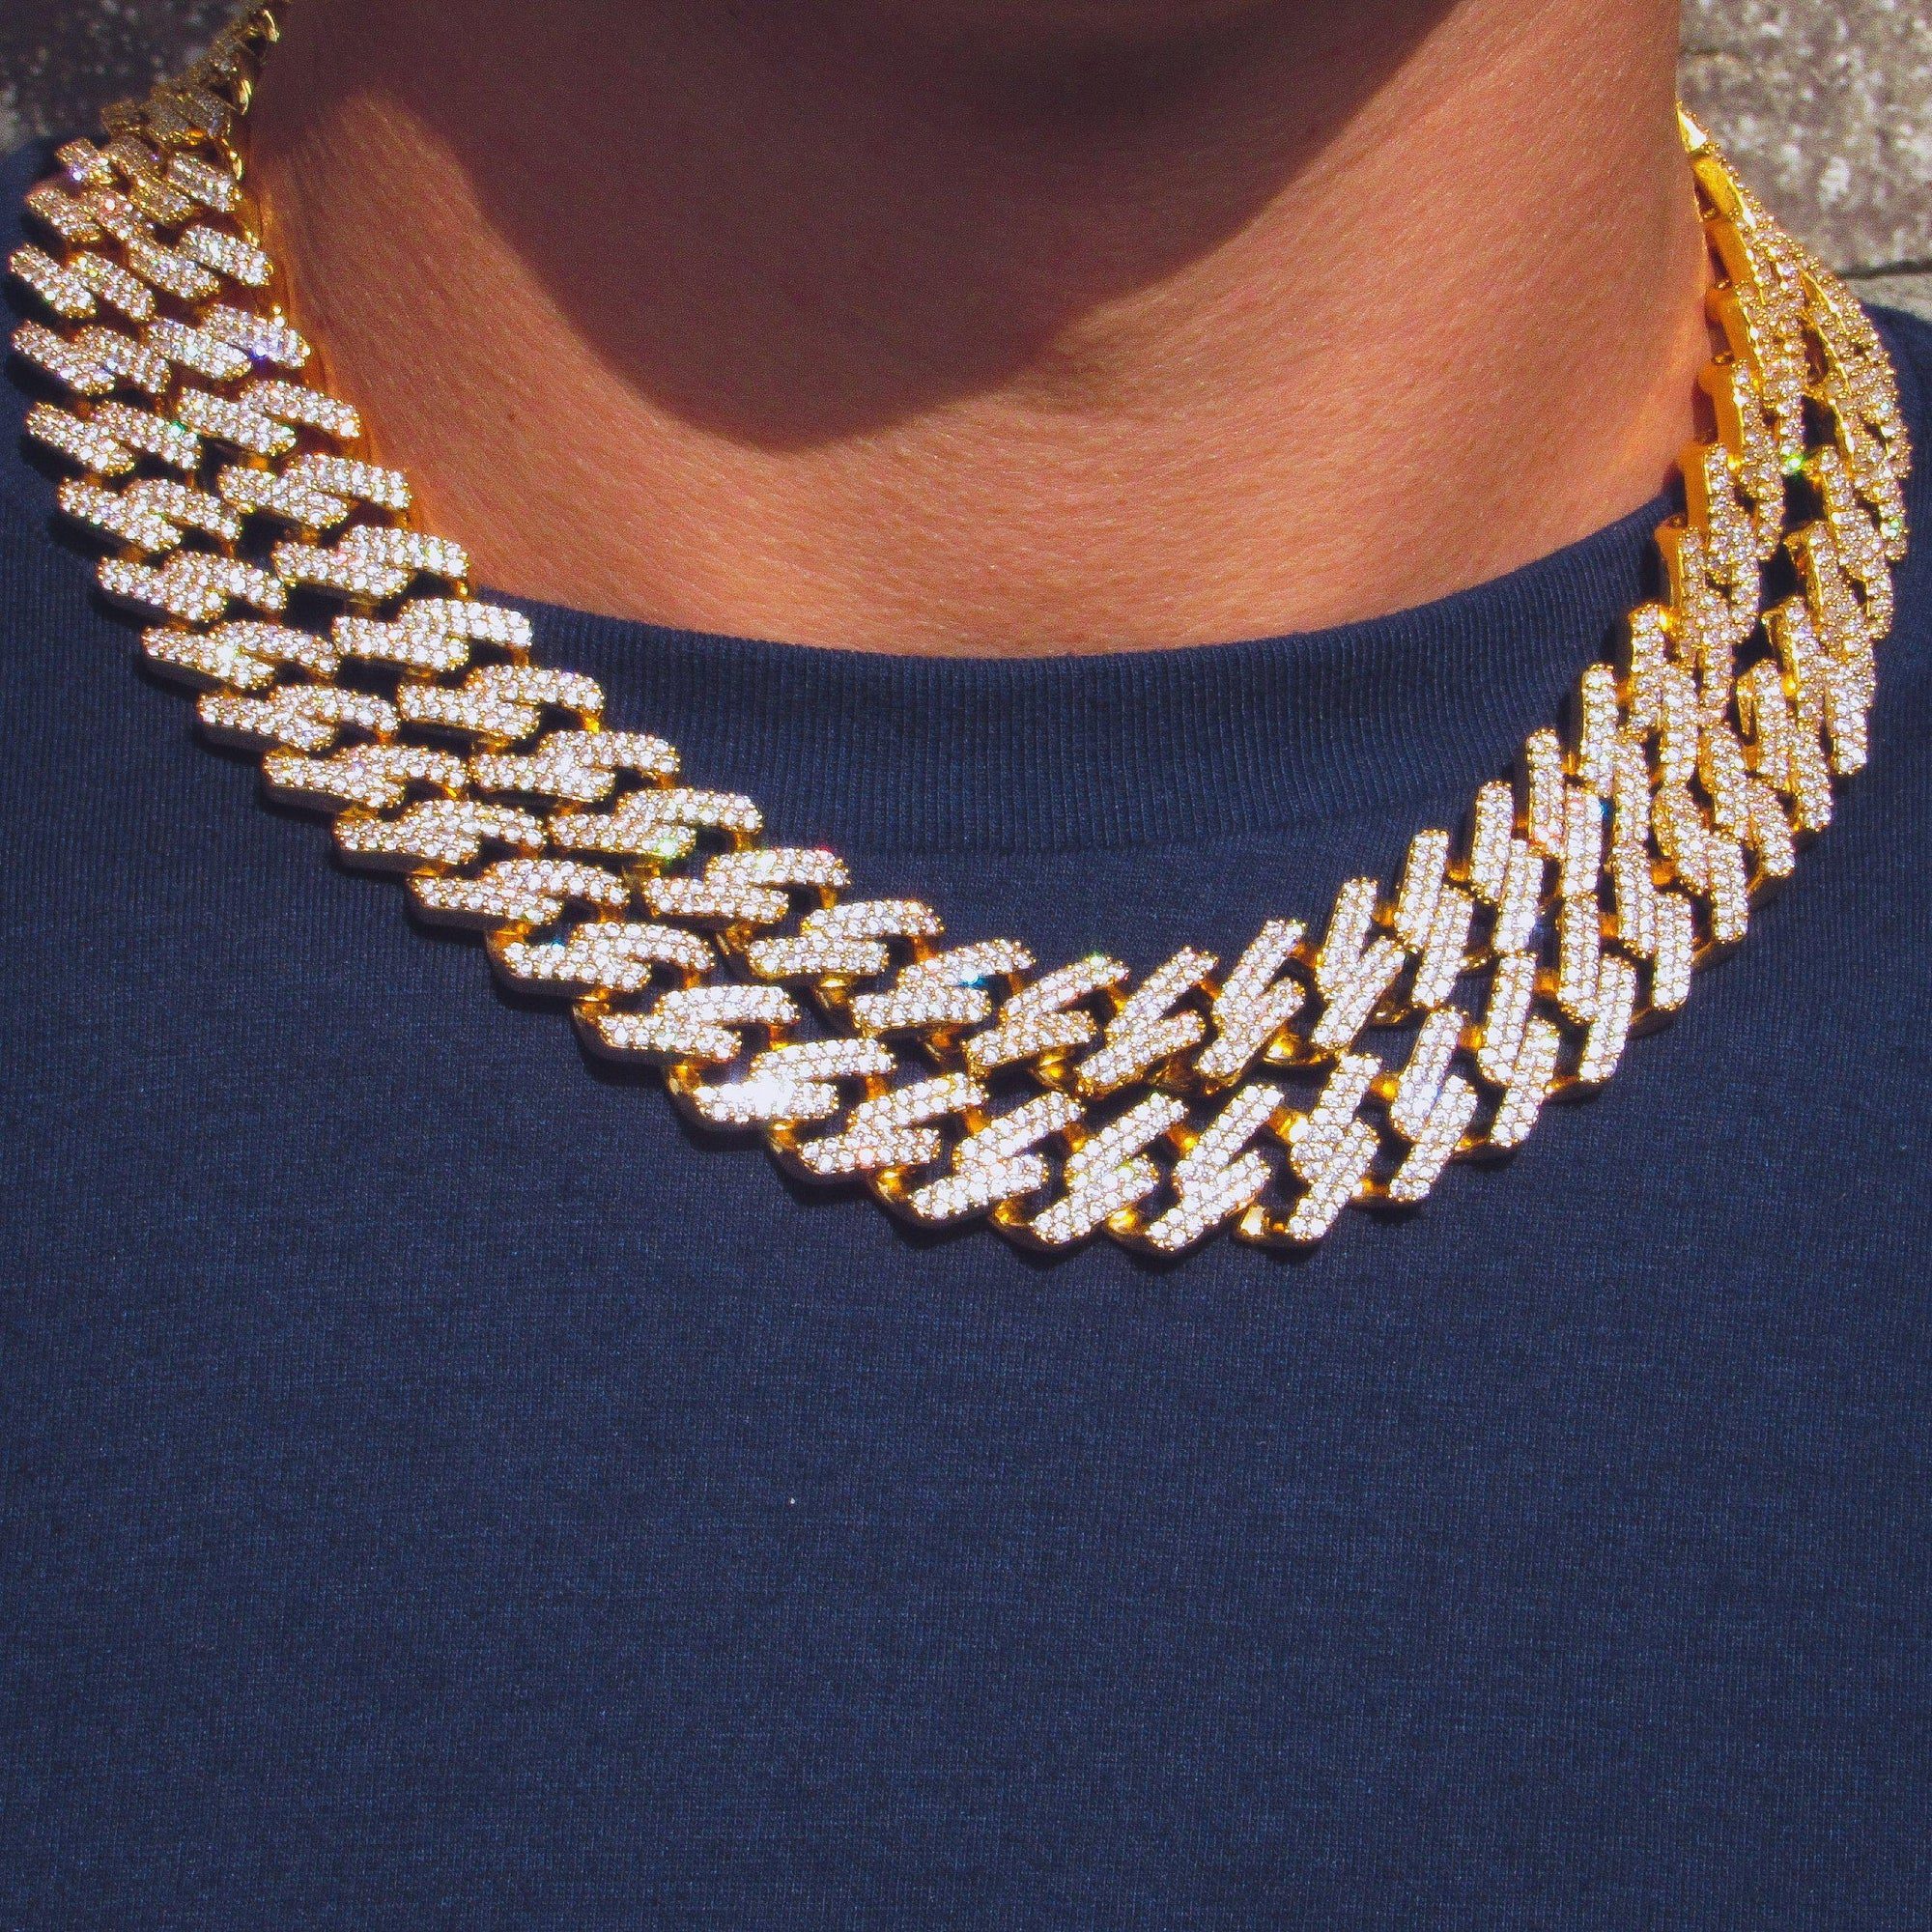 14mm Prong Set Miami Cuban Link Chain in Yellow Gold - IcedGold